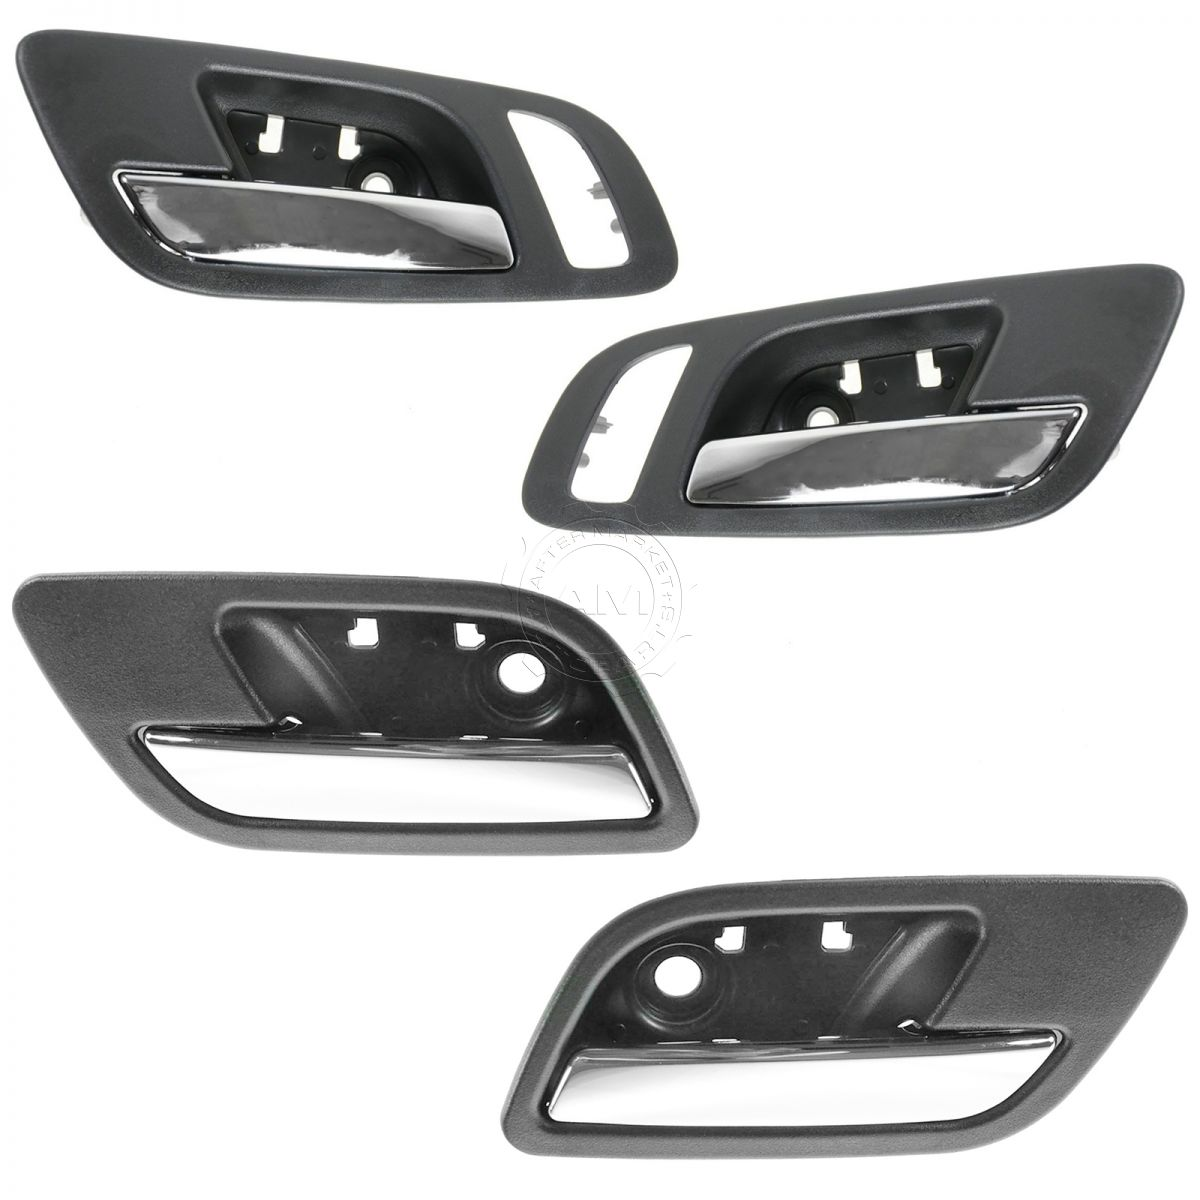 Front LH /& RH Pair Outer Door Handle Textured Black for 94-98 Mazda//Ford Ranger